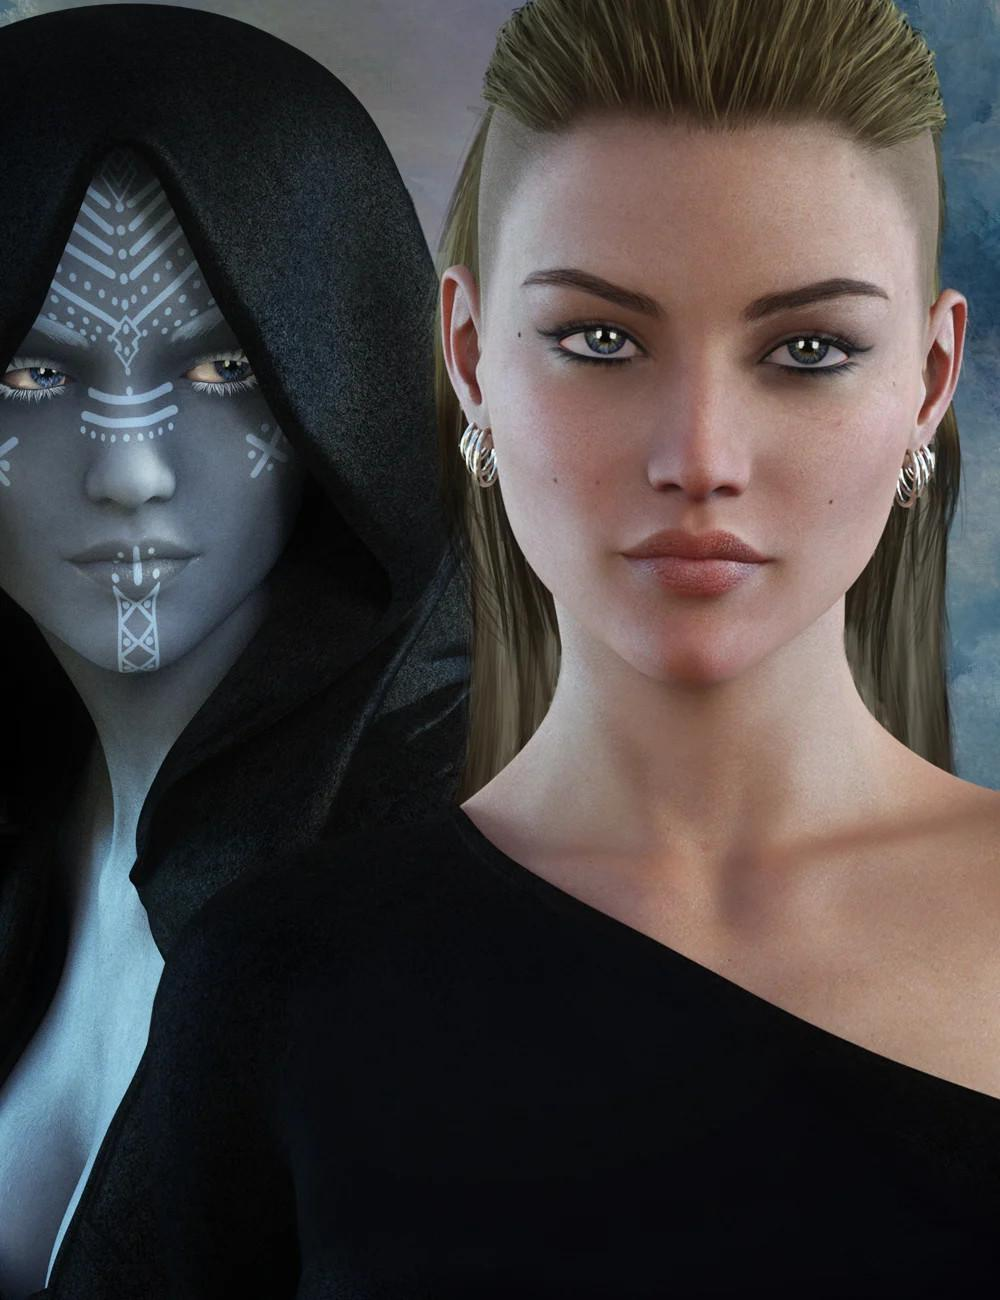 Eilish for Genesis 3 Female